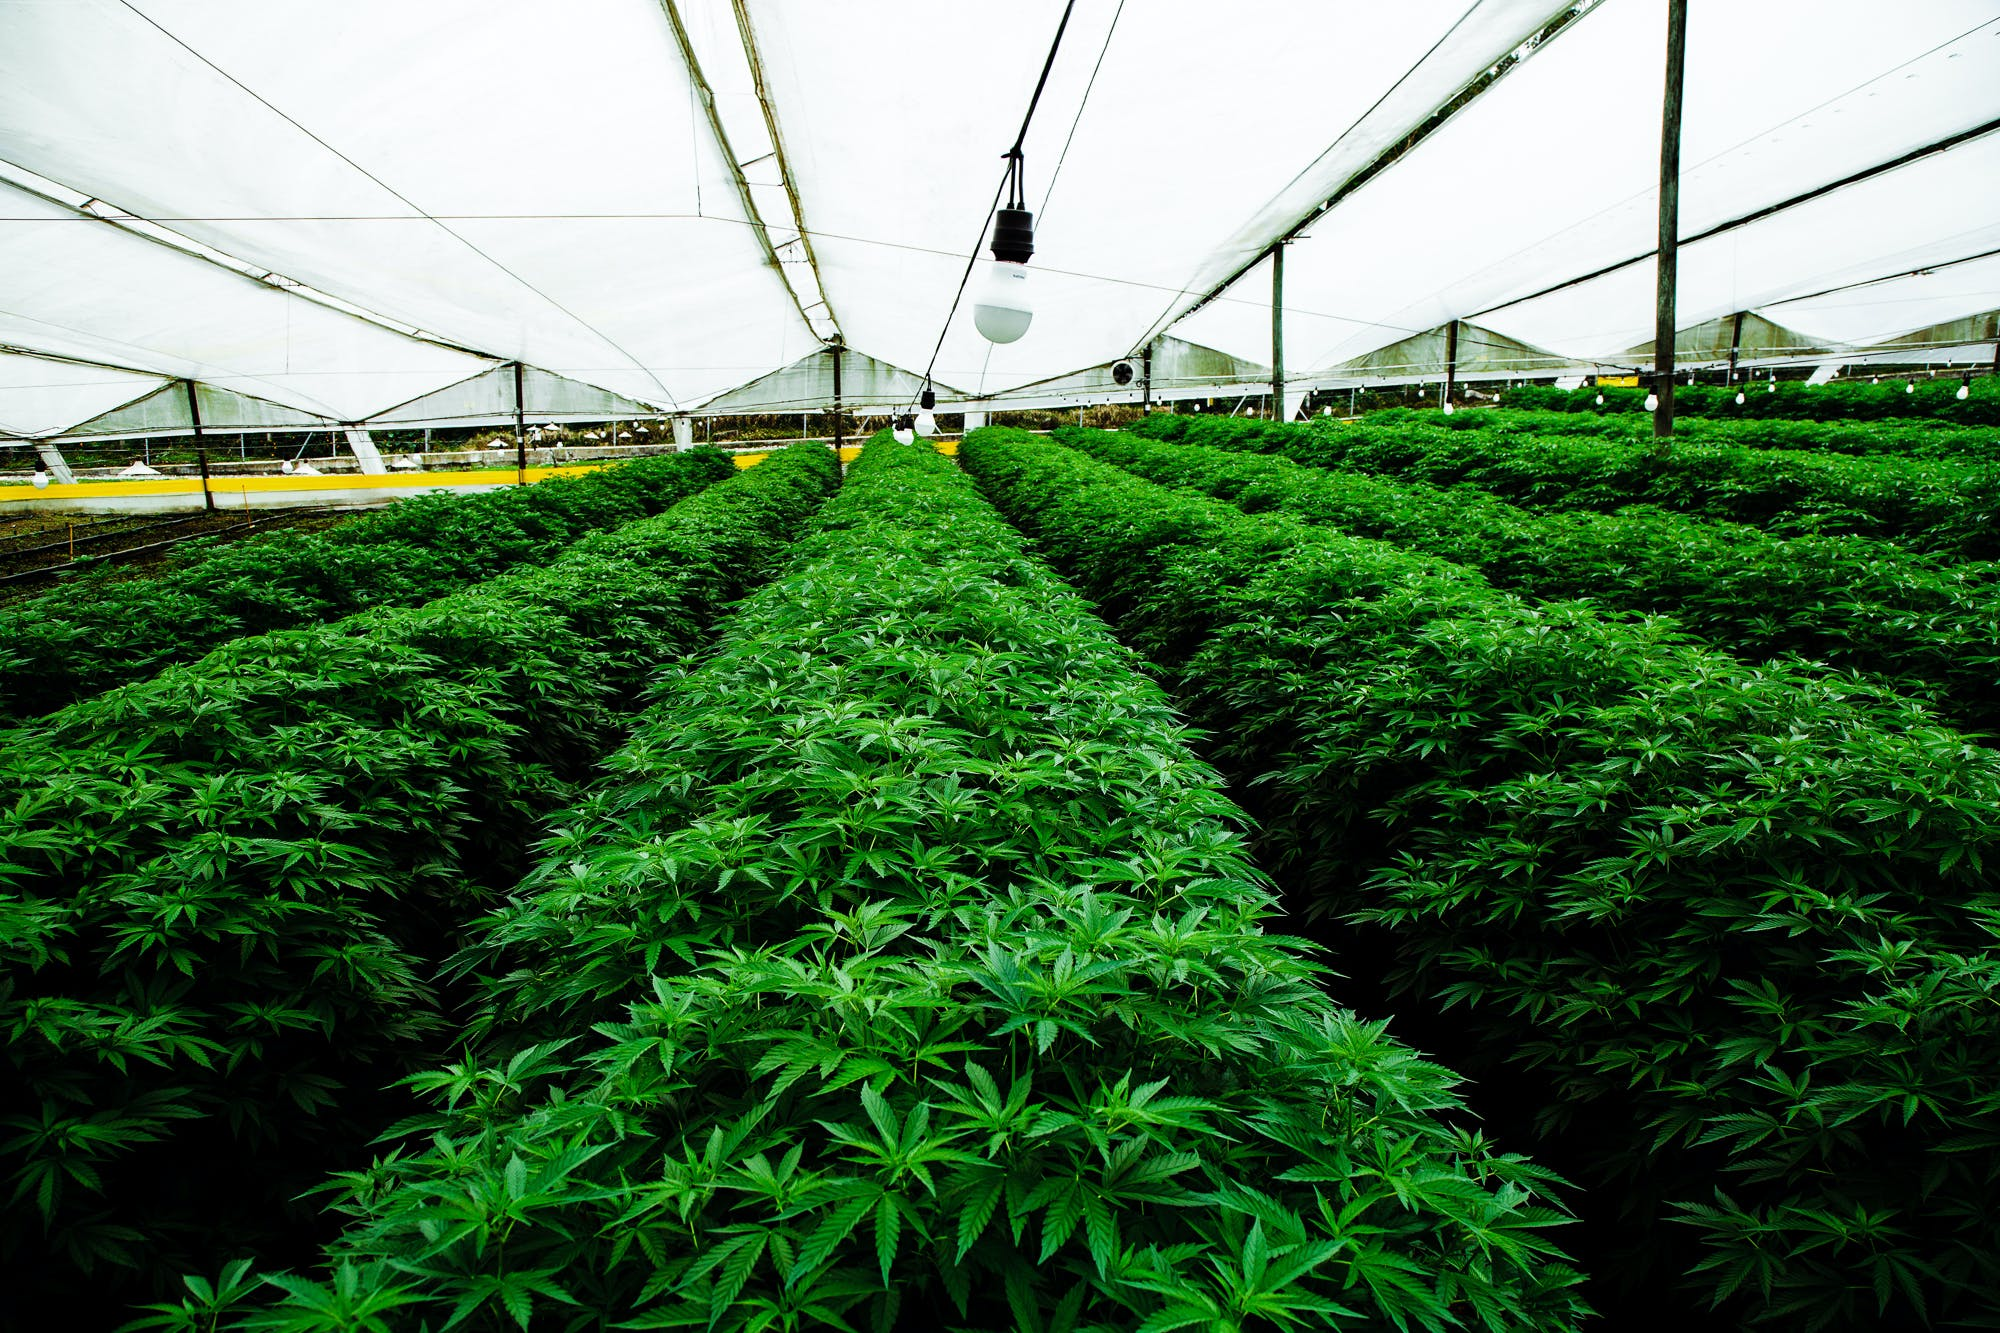 Pharmacielo could become a leader in the global medical cannabis market 6 Cannabis is Legal in Vermont, But Gifting it Isnt